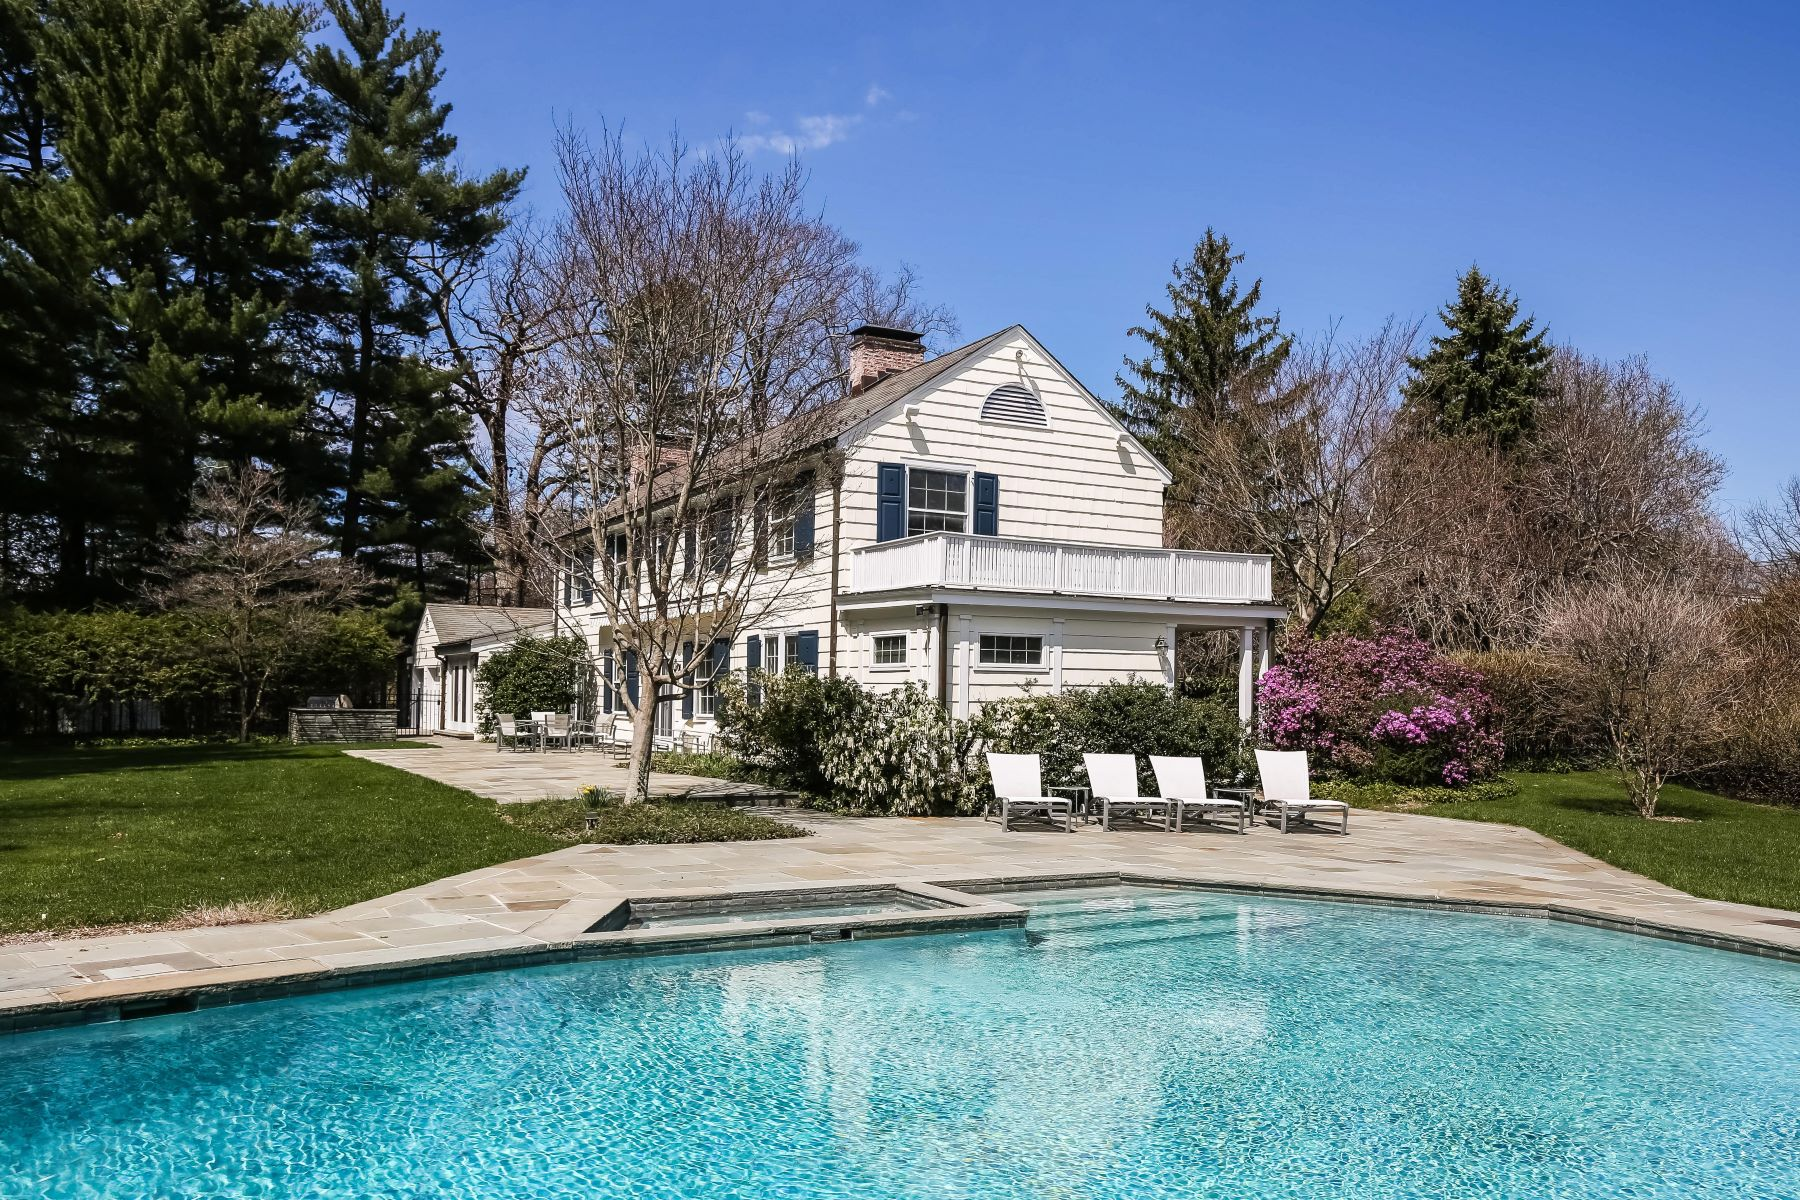 Single Family Home for Active at Unique Property in Murray Hill 2 Richbell Road Scarsdale, New York 10583 United States